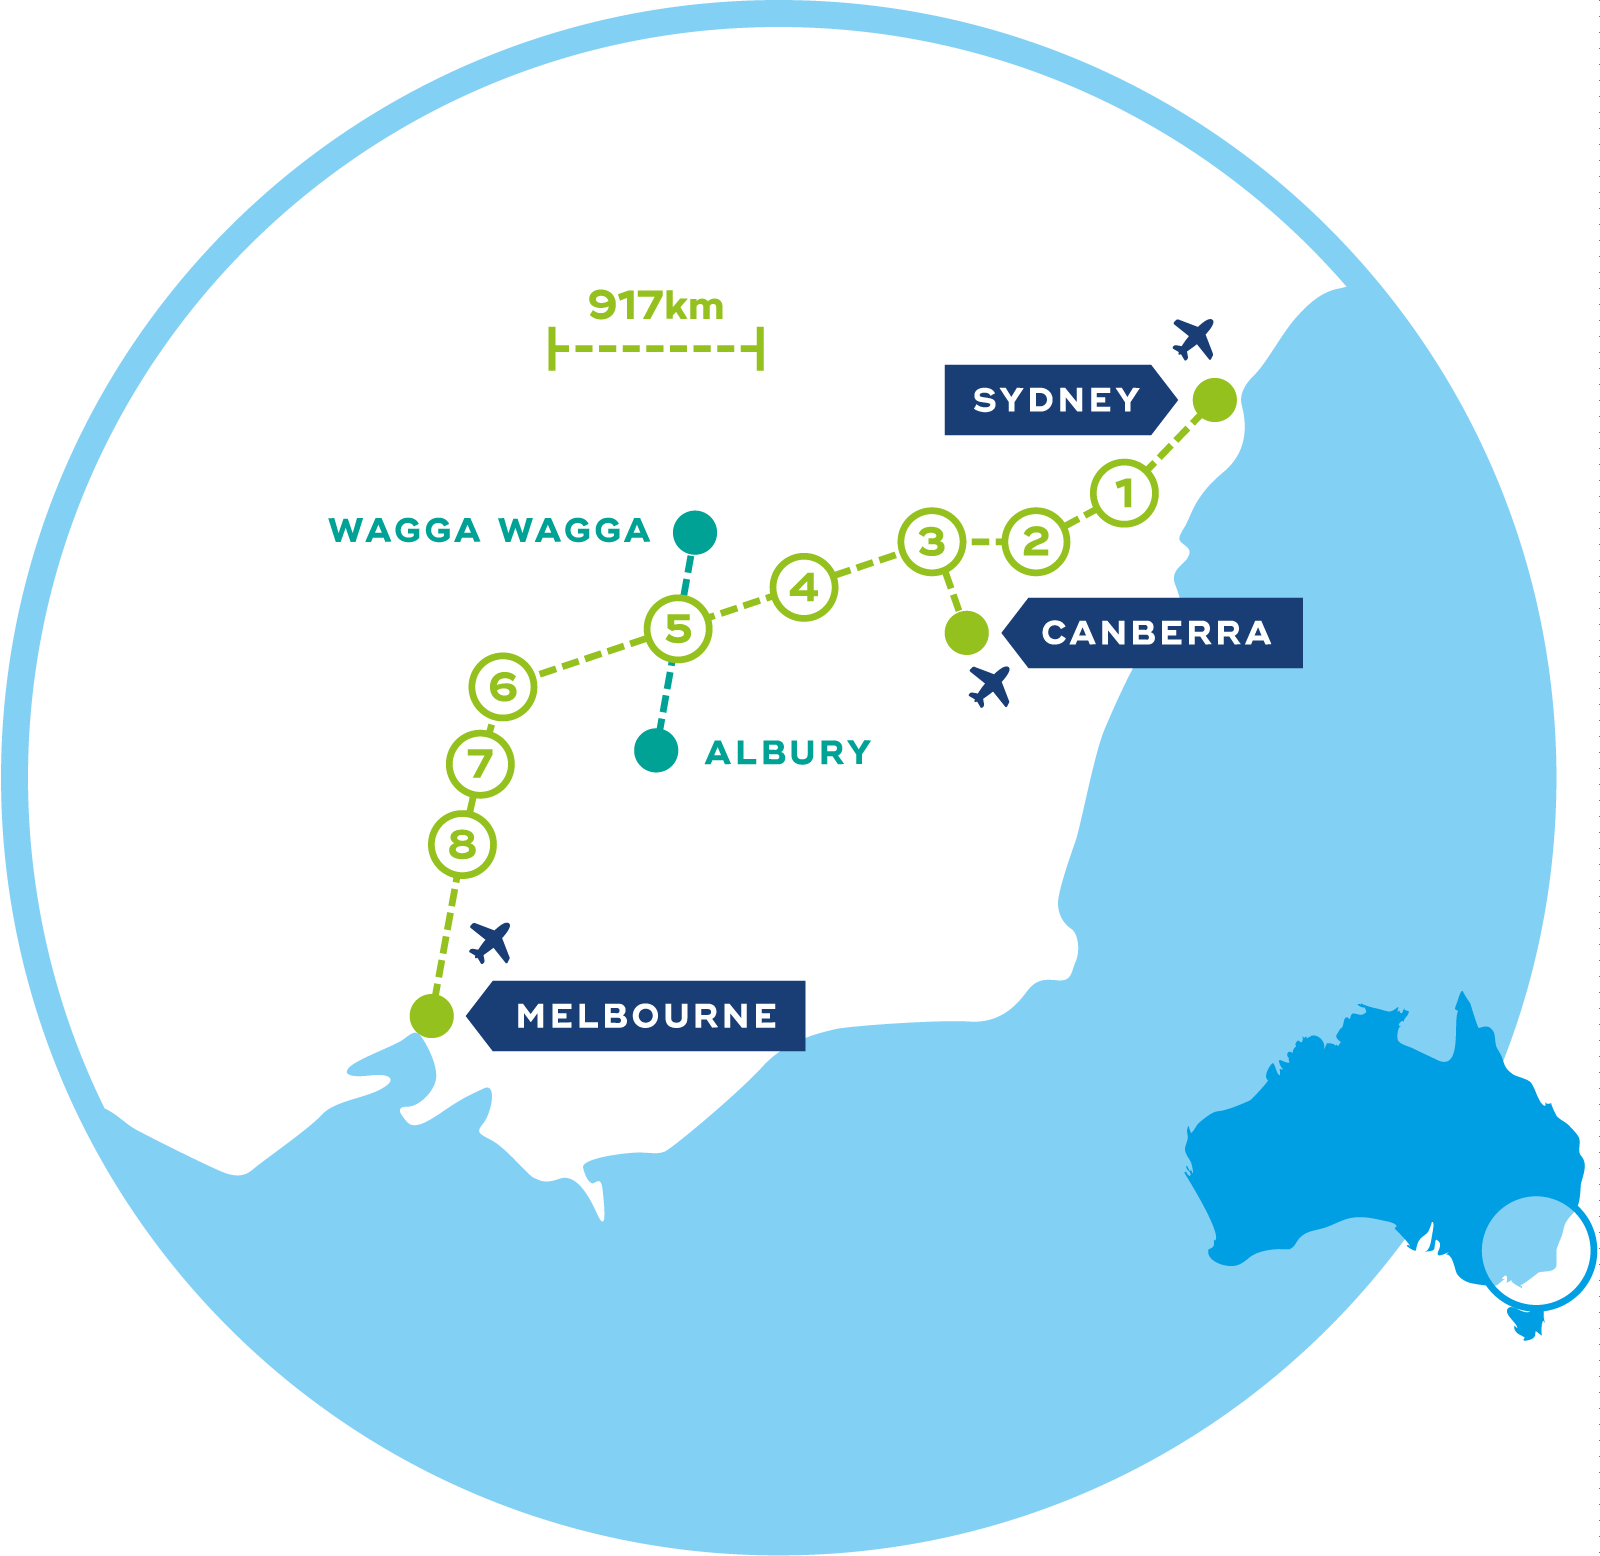 CLARA Melbourne–Sydney high-speed rail route map showing branch lines to Albury and Wagga Wagga